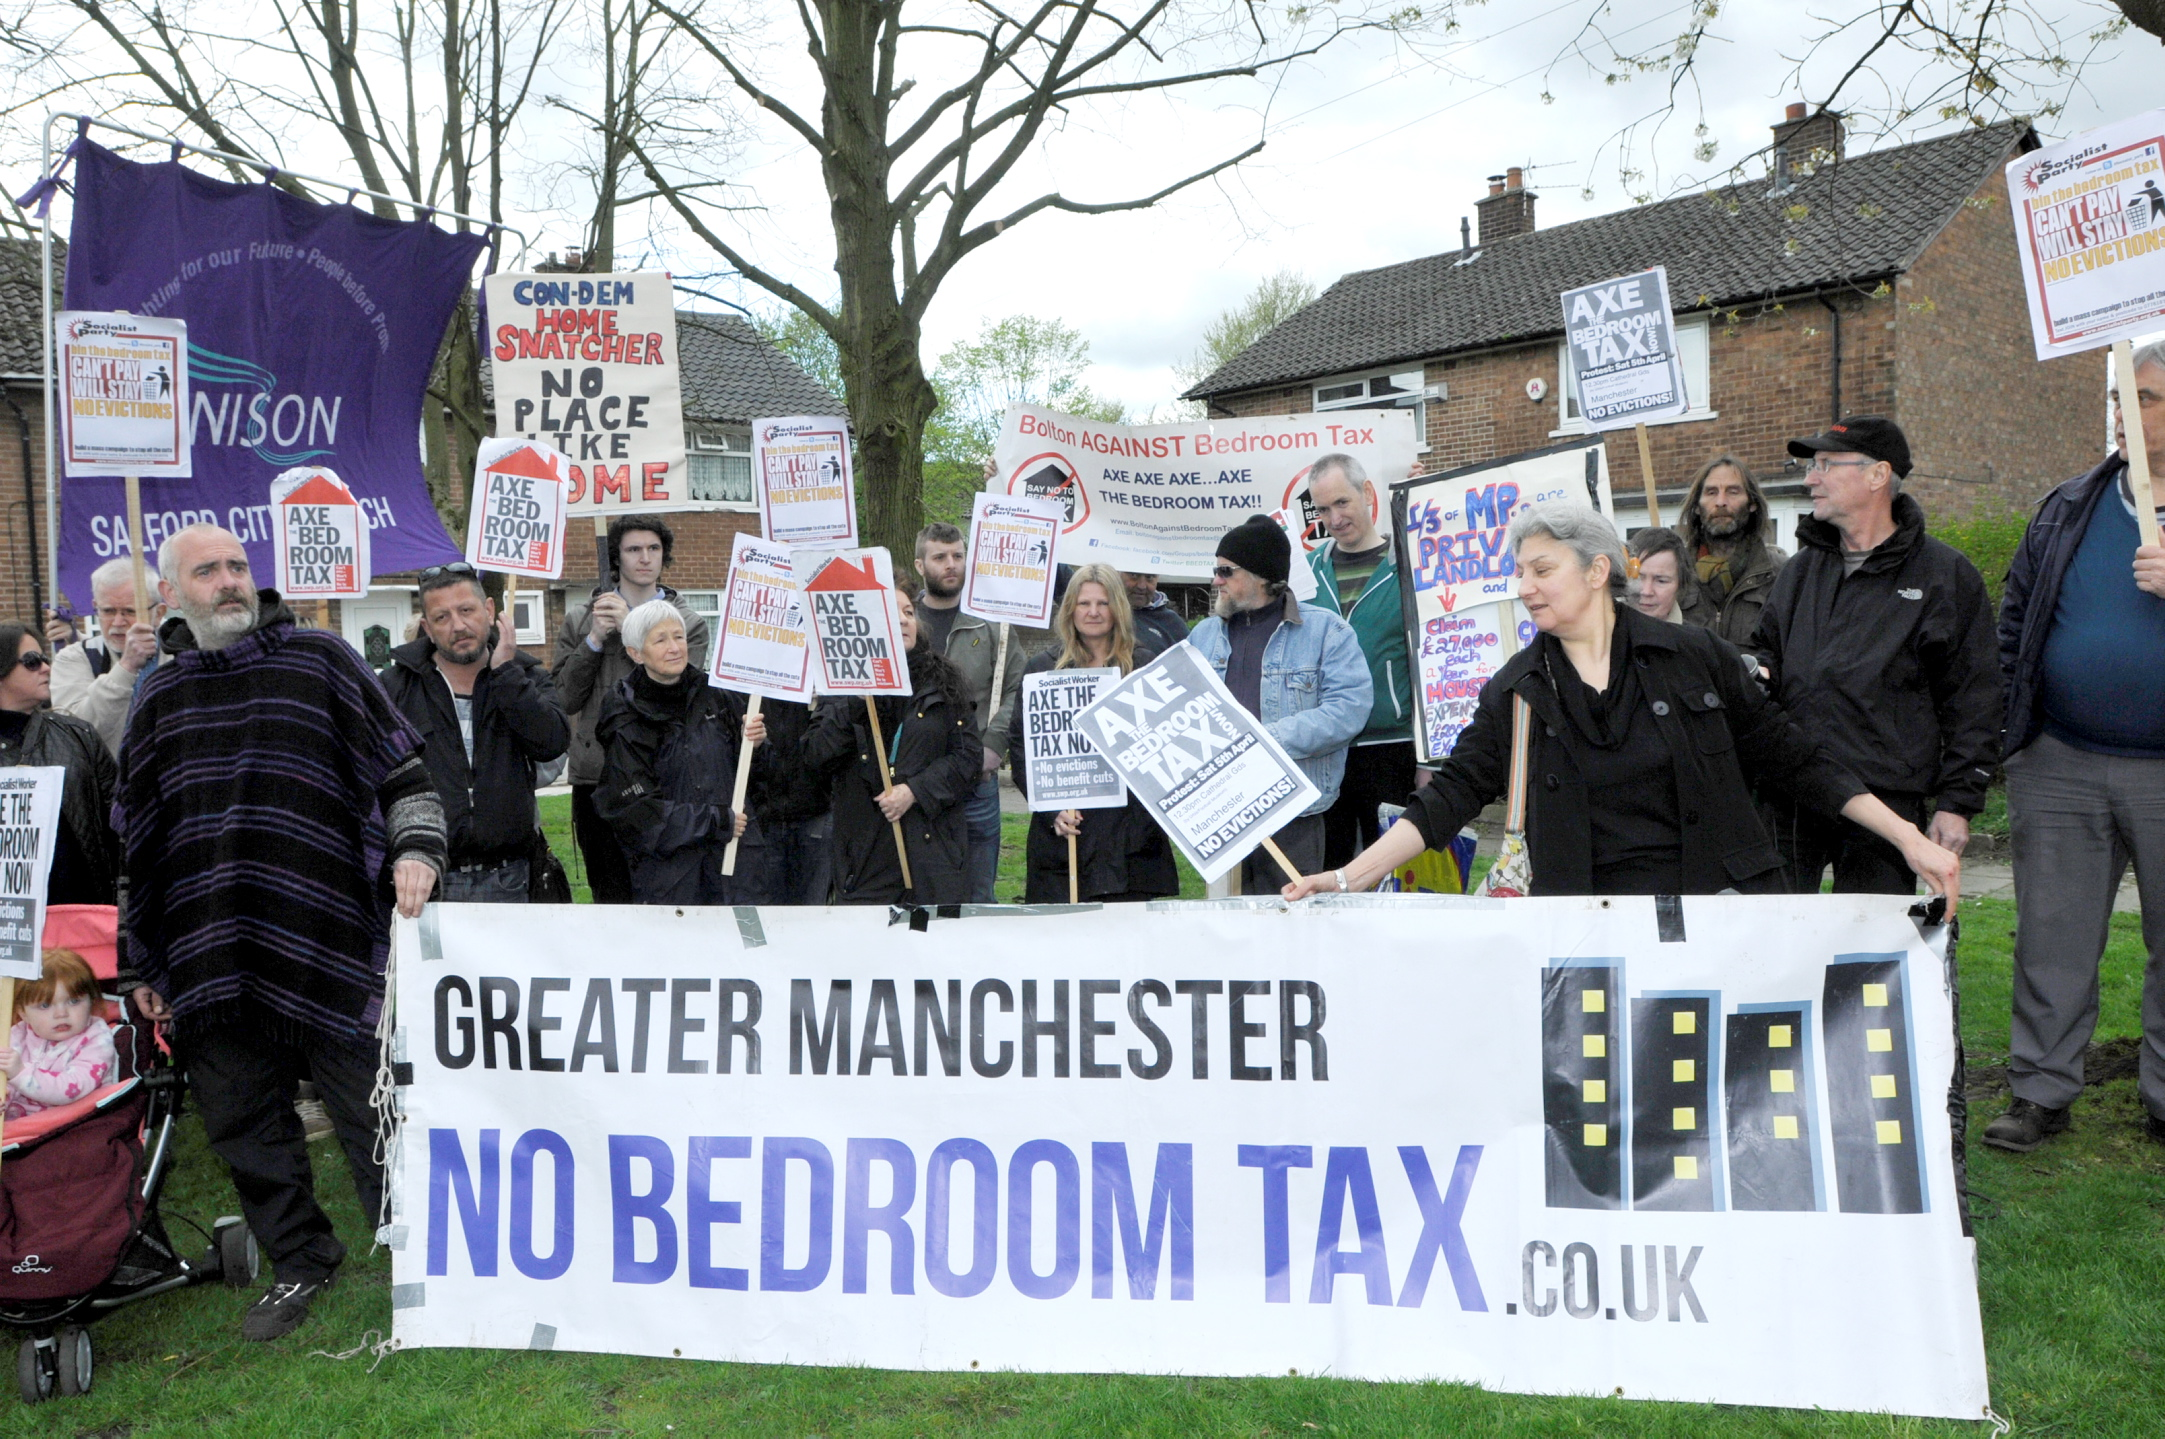 Anti-bedroom tax campaigners claim victory after eviction reprieve